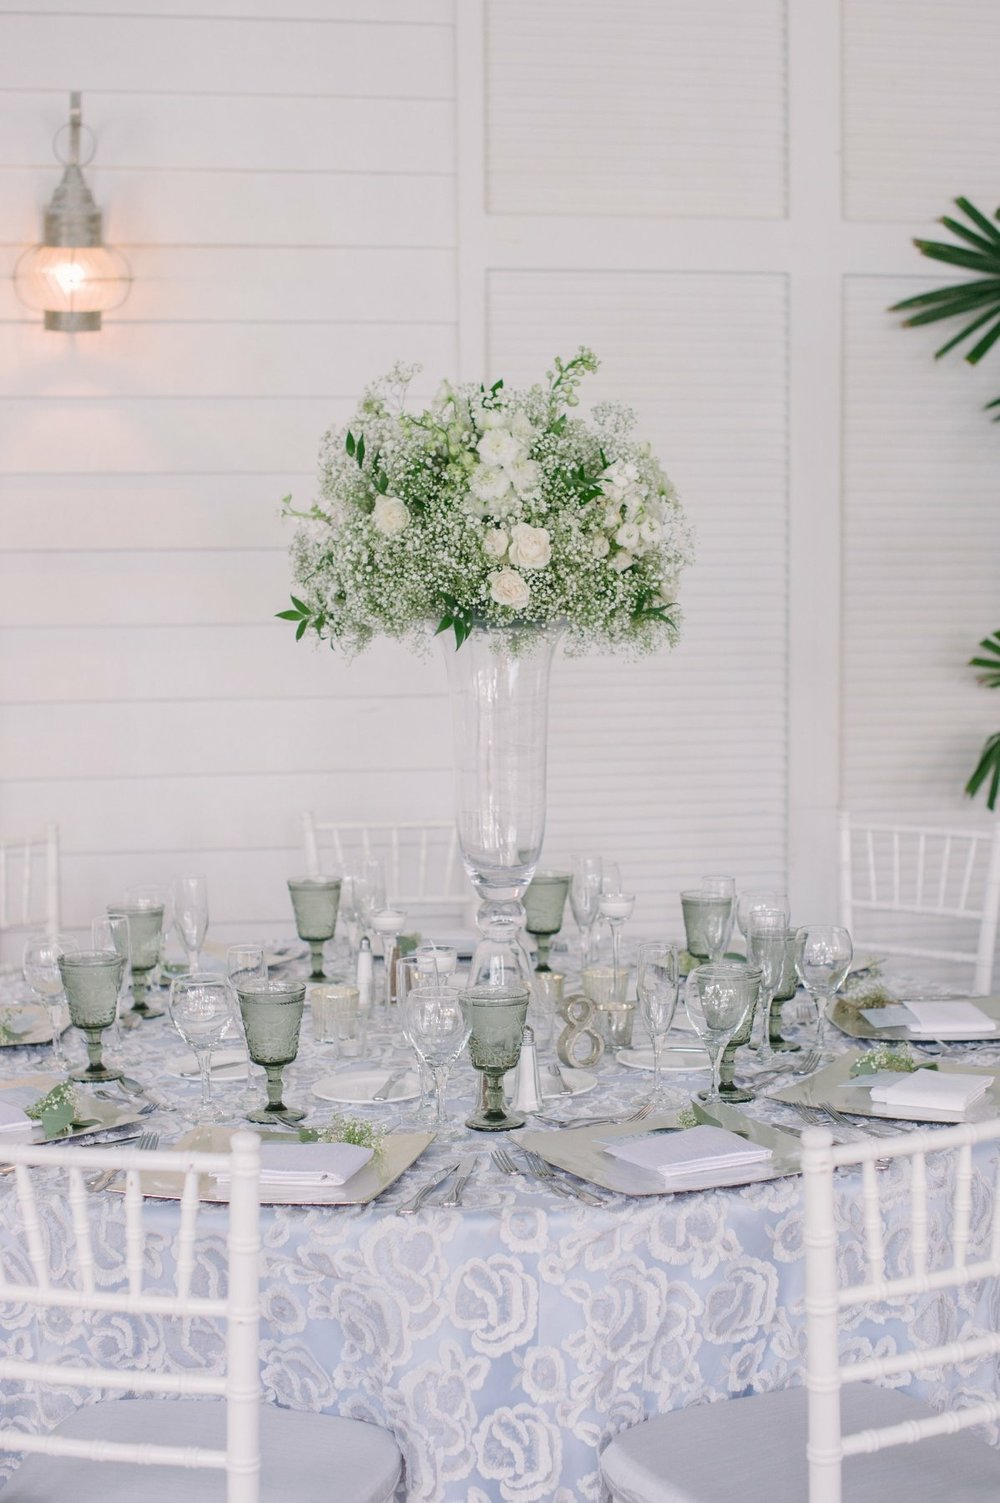 Clarity and Class Nuage Linens Designer Wedding